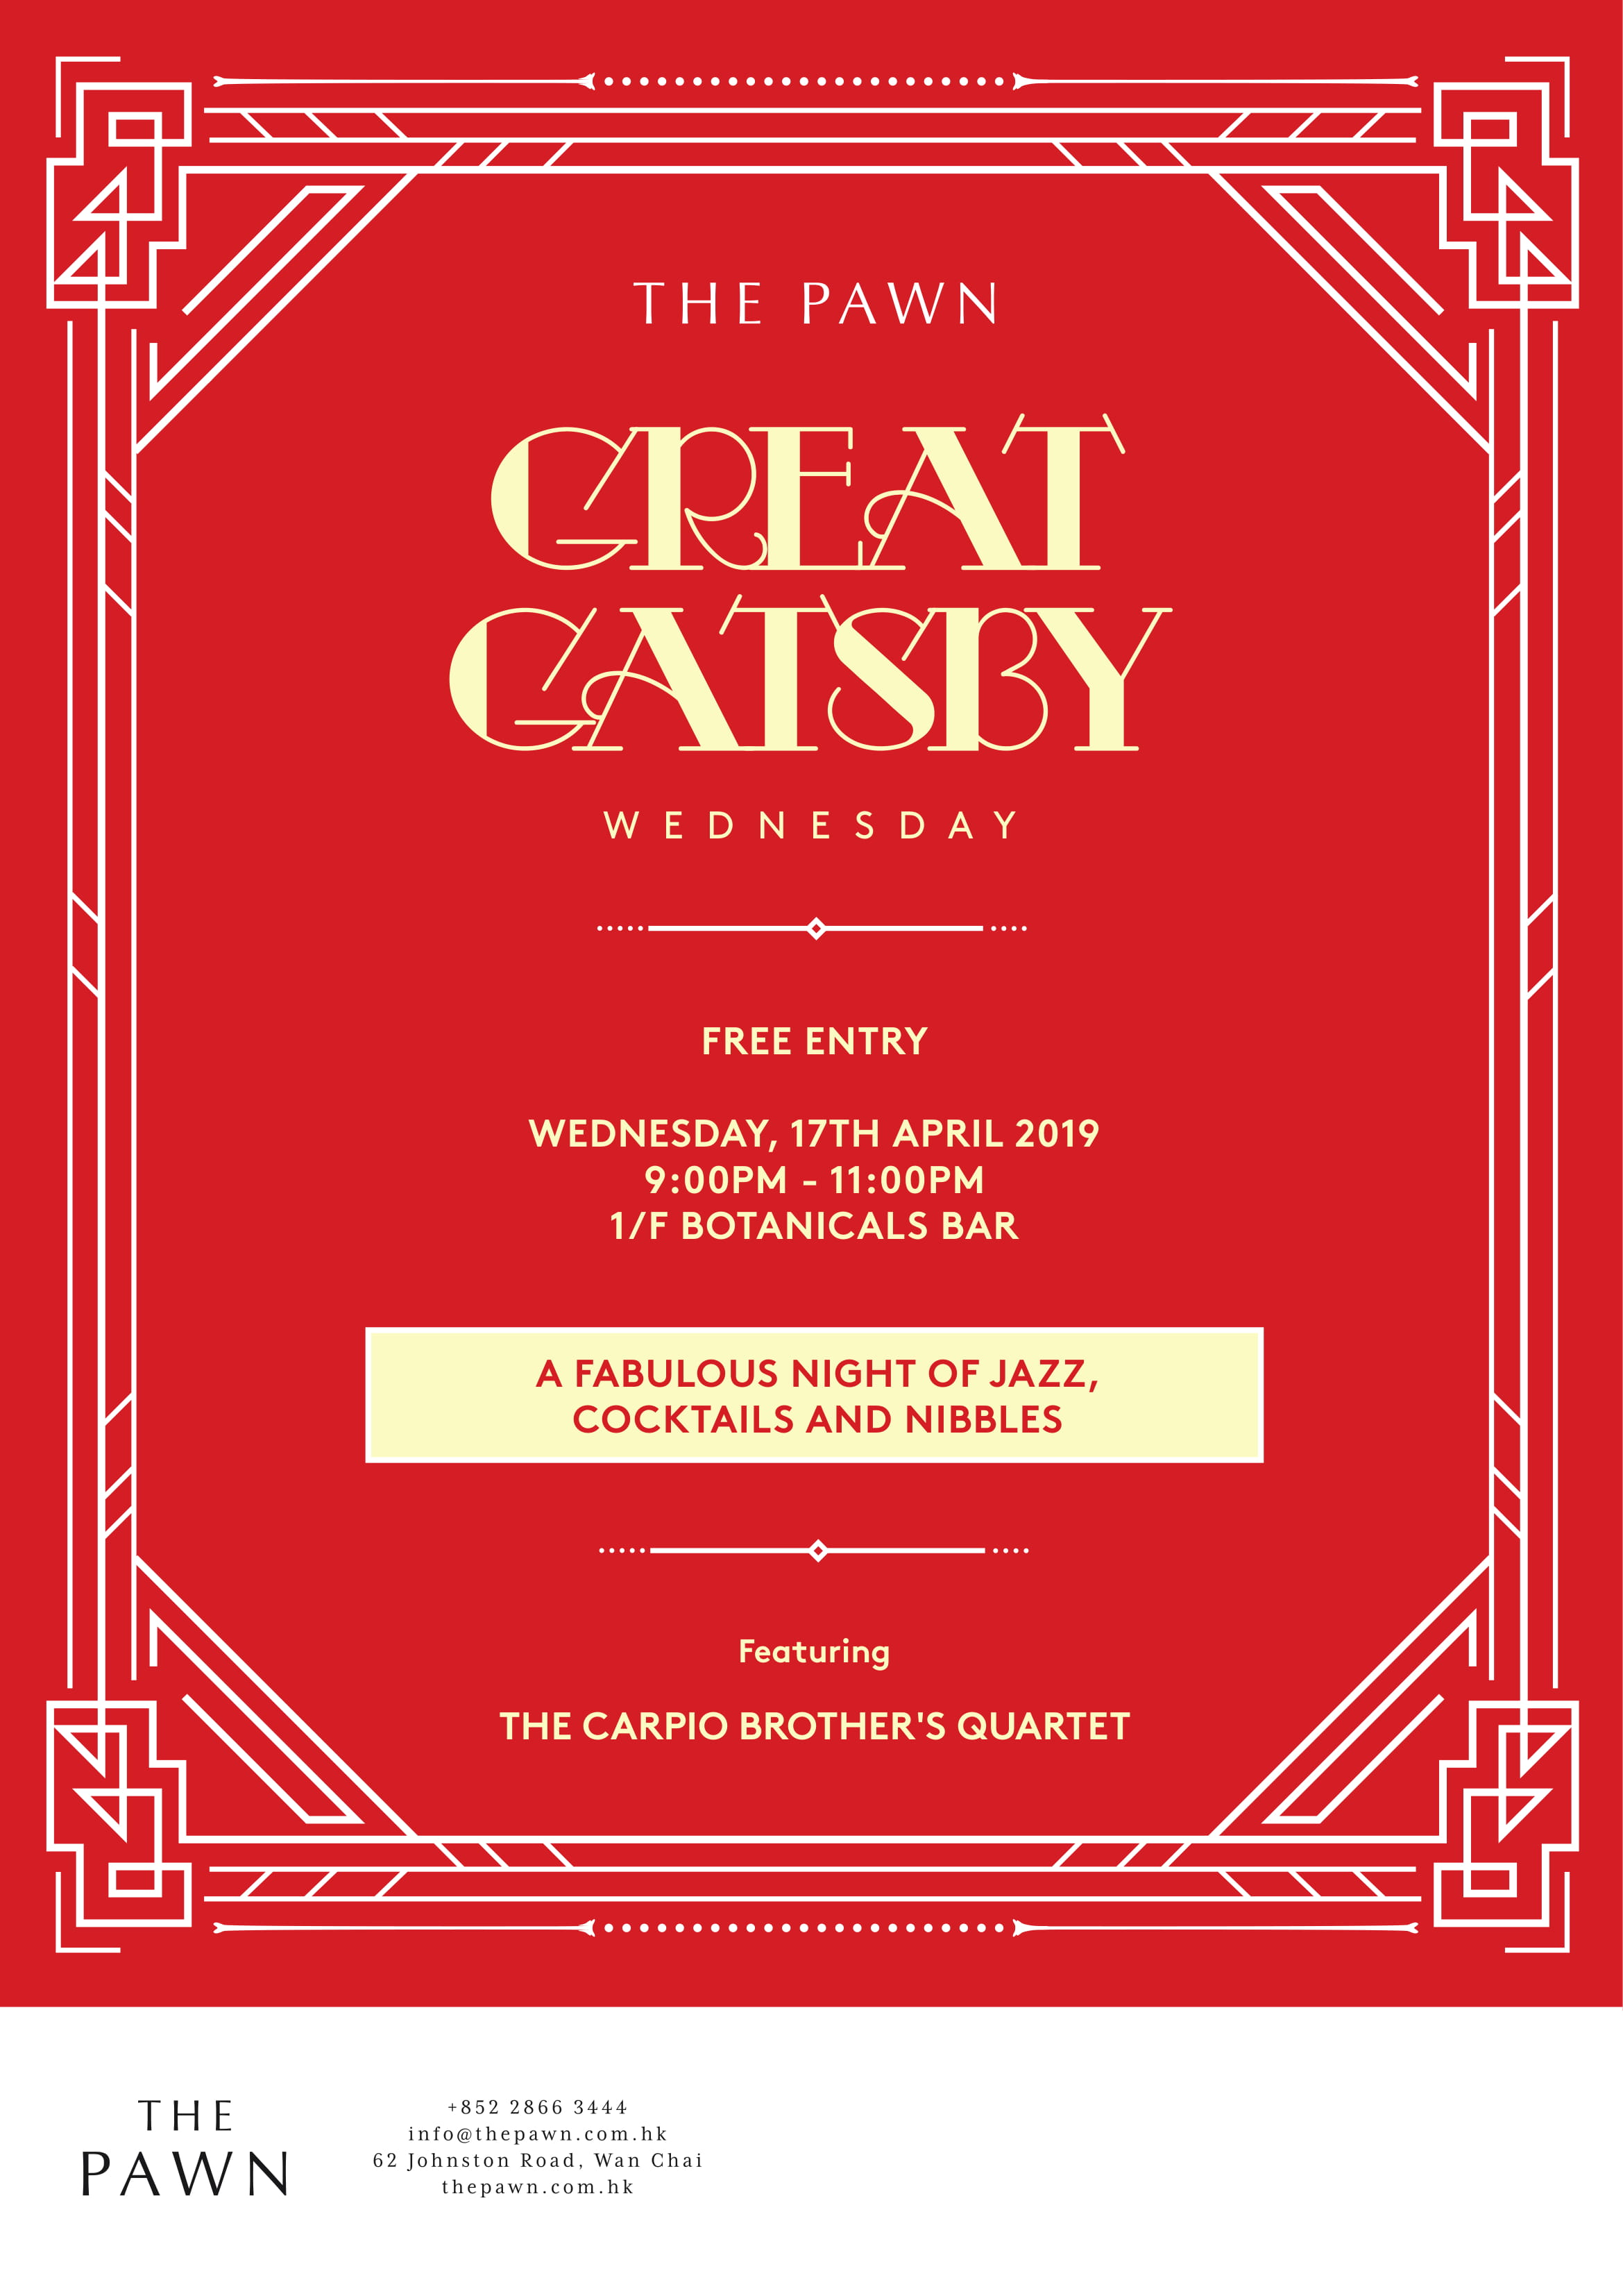 The Pawn Great Gatsby Wednesday